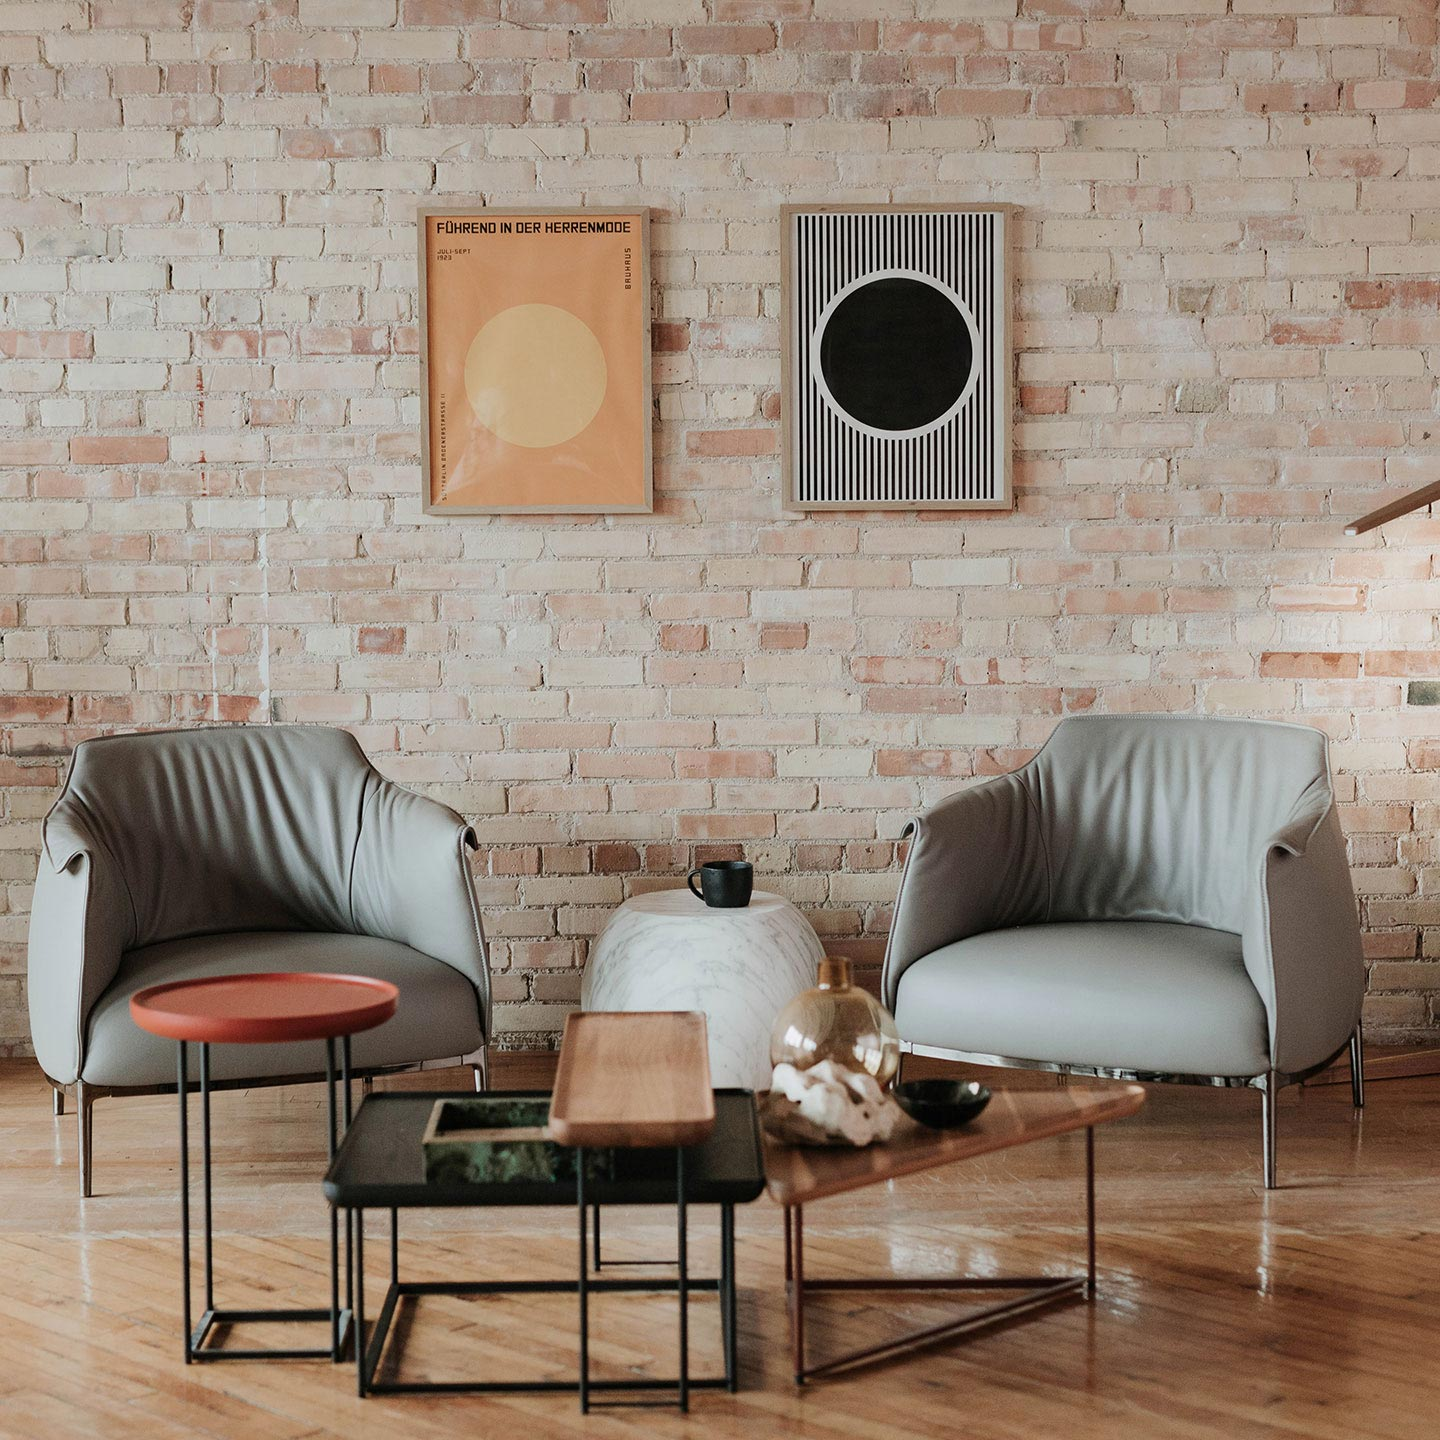 AIREA: Creating Connections Through Furniture